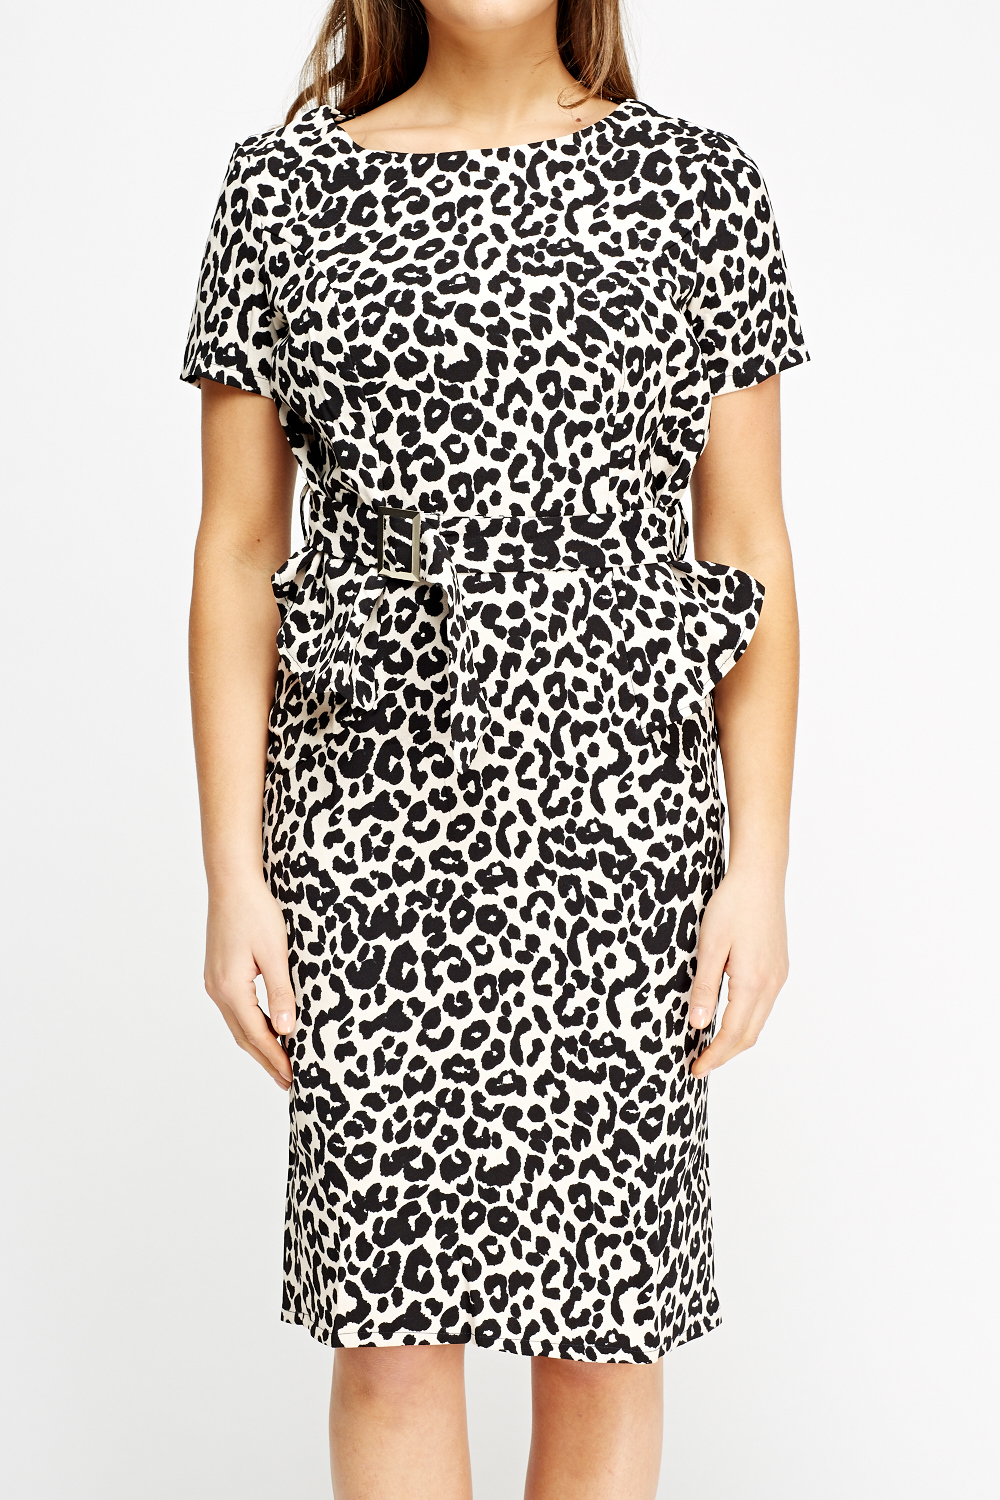 Leopard Print Peplum Dress Light Pink Black Or Off White